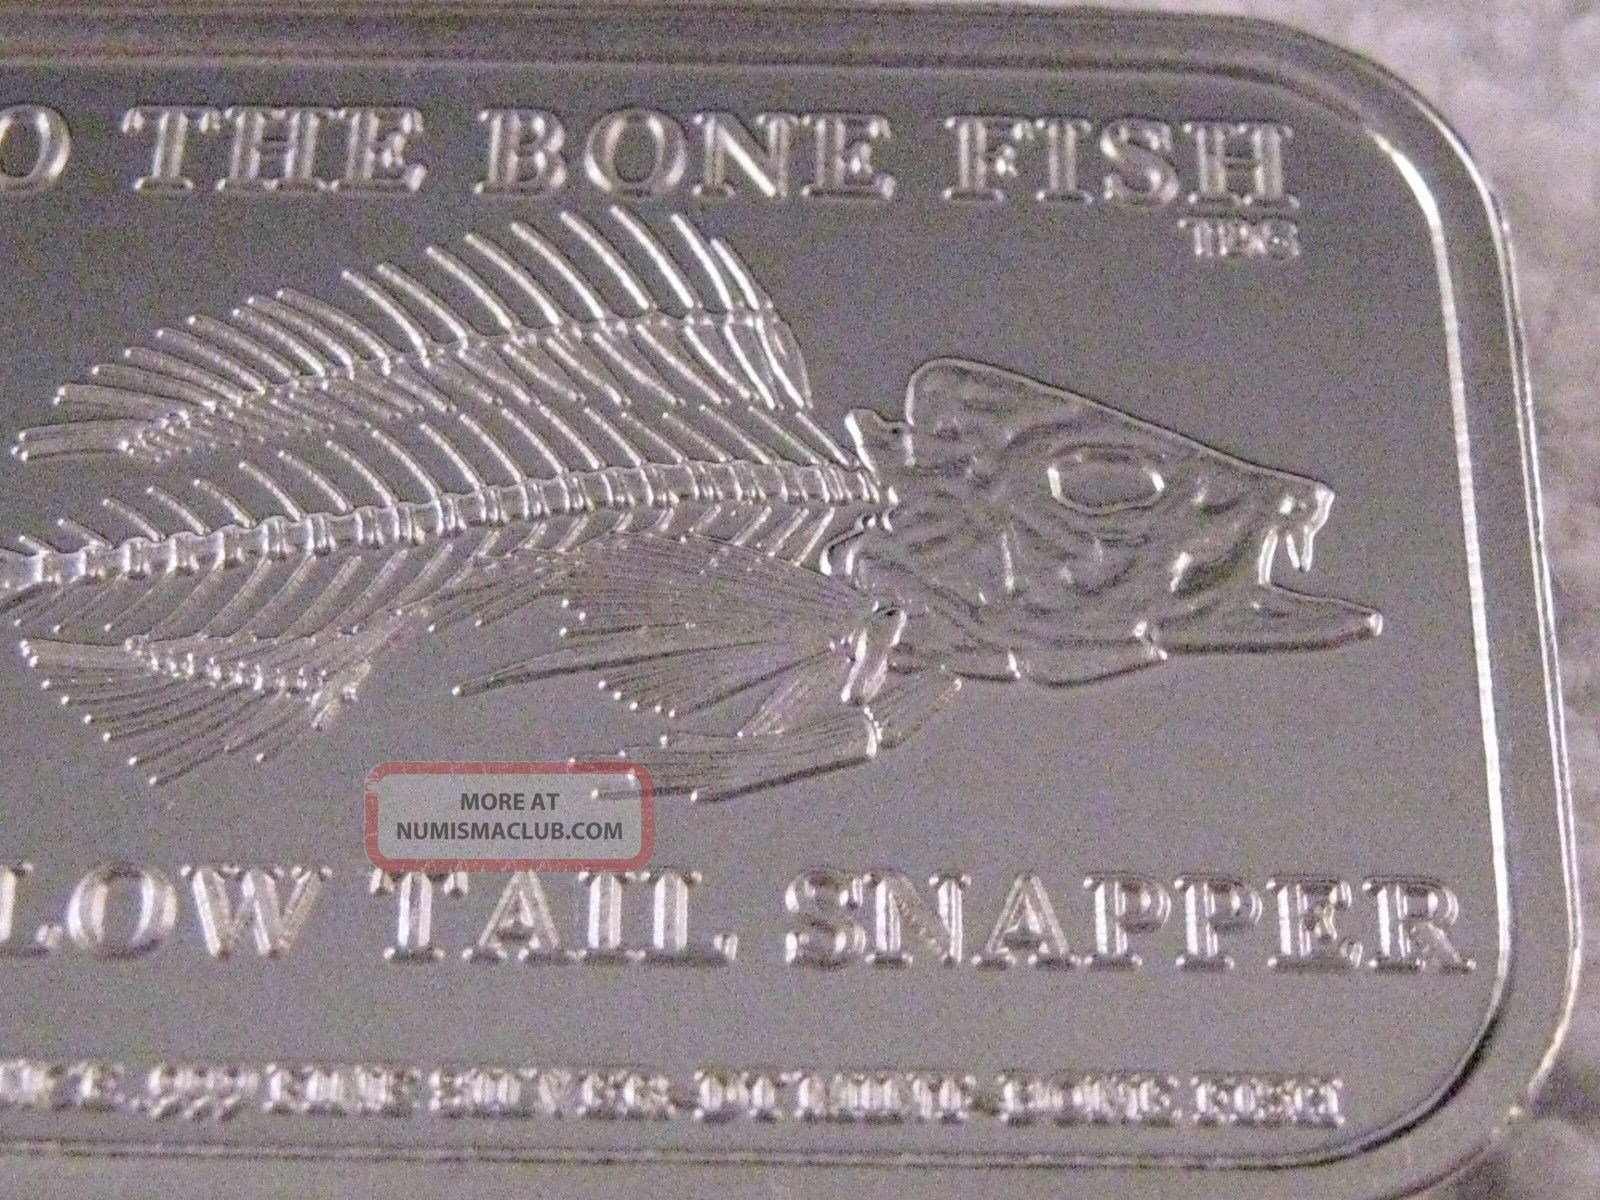 Dt Yellow Tail Snapper Bad To The Bone Fish Skeleton